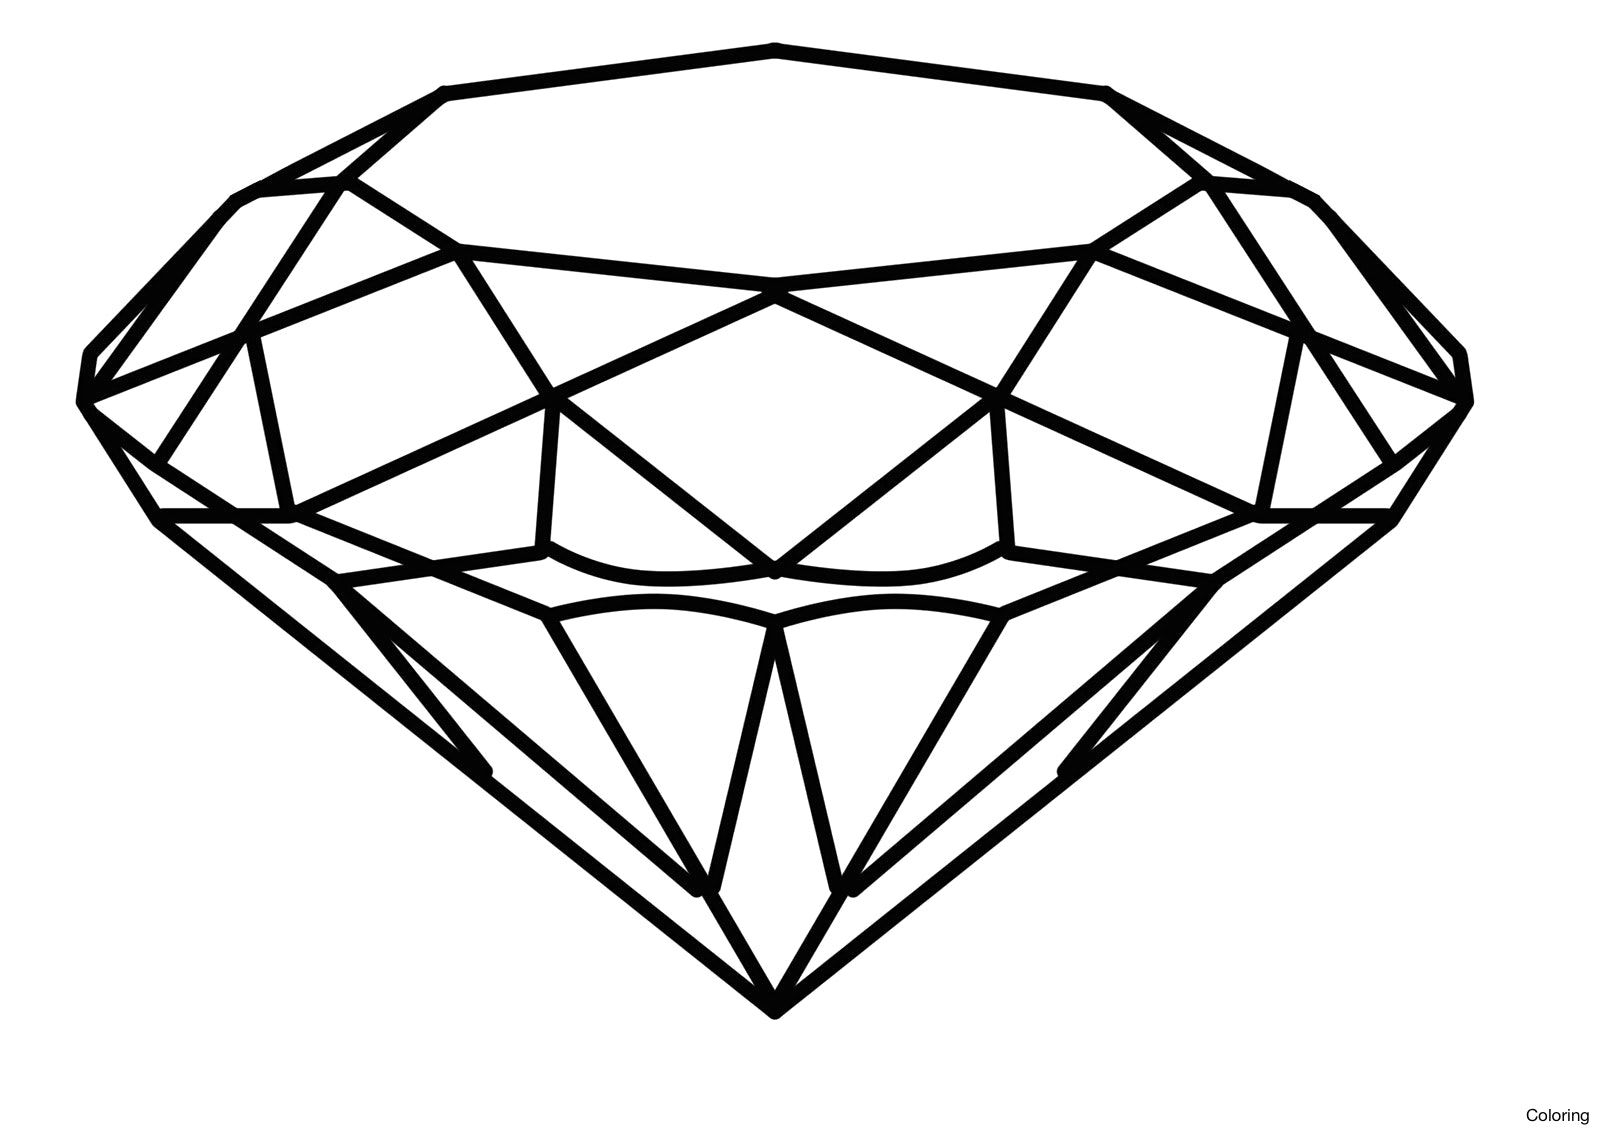 Diamond Coloring Pages Gallery 12k - Save it to your computer